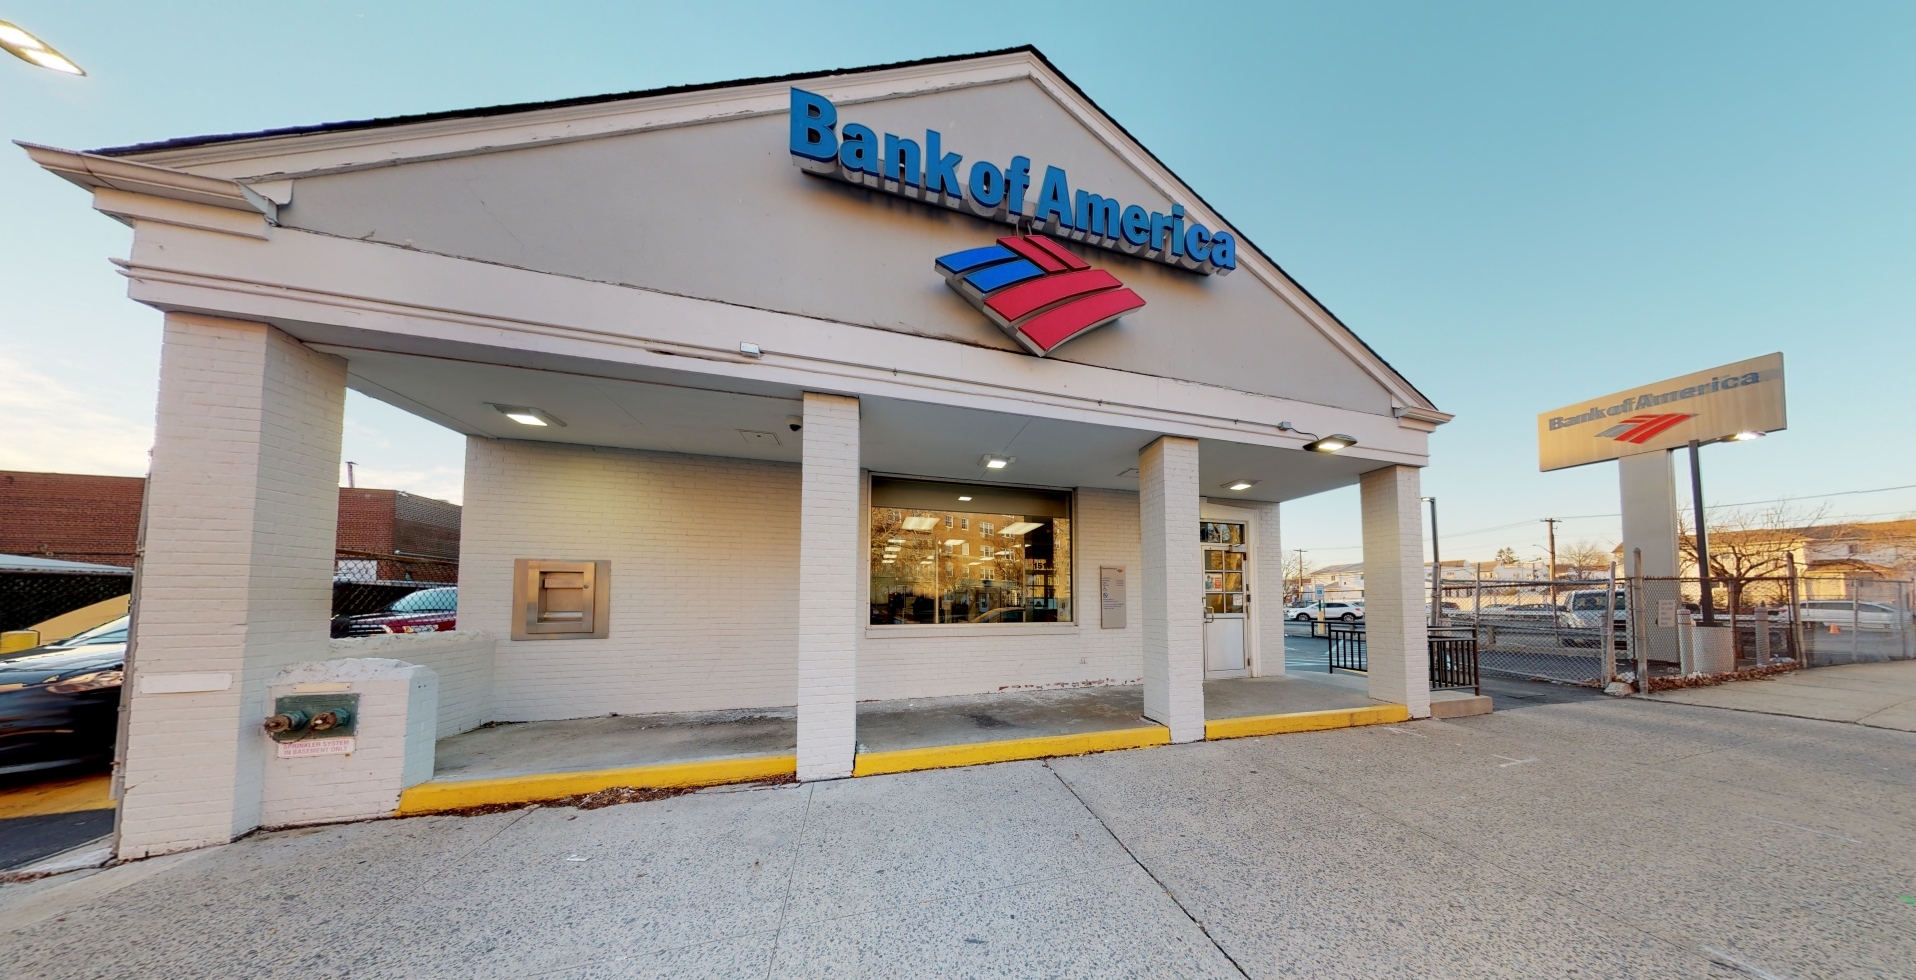 Bank of America financial center with walk-up ATM   15116 84th St, Howard Beach, NY 11414